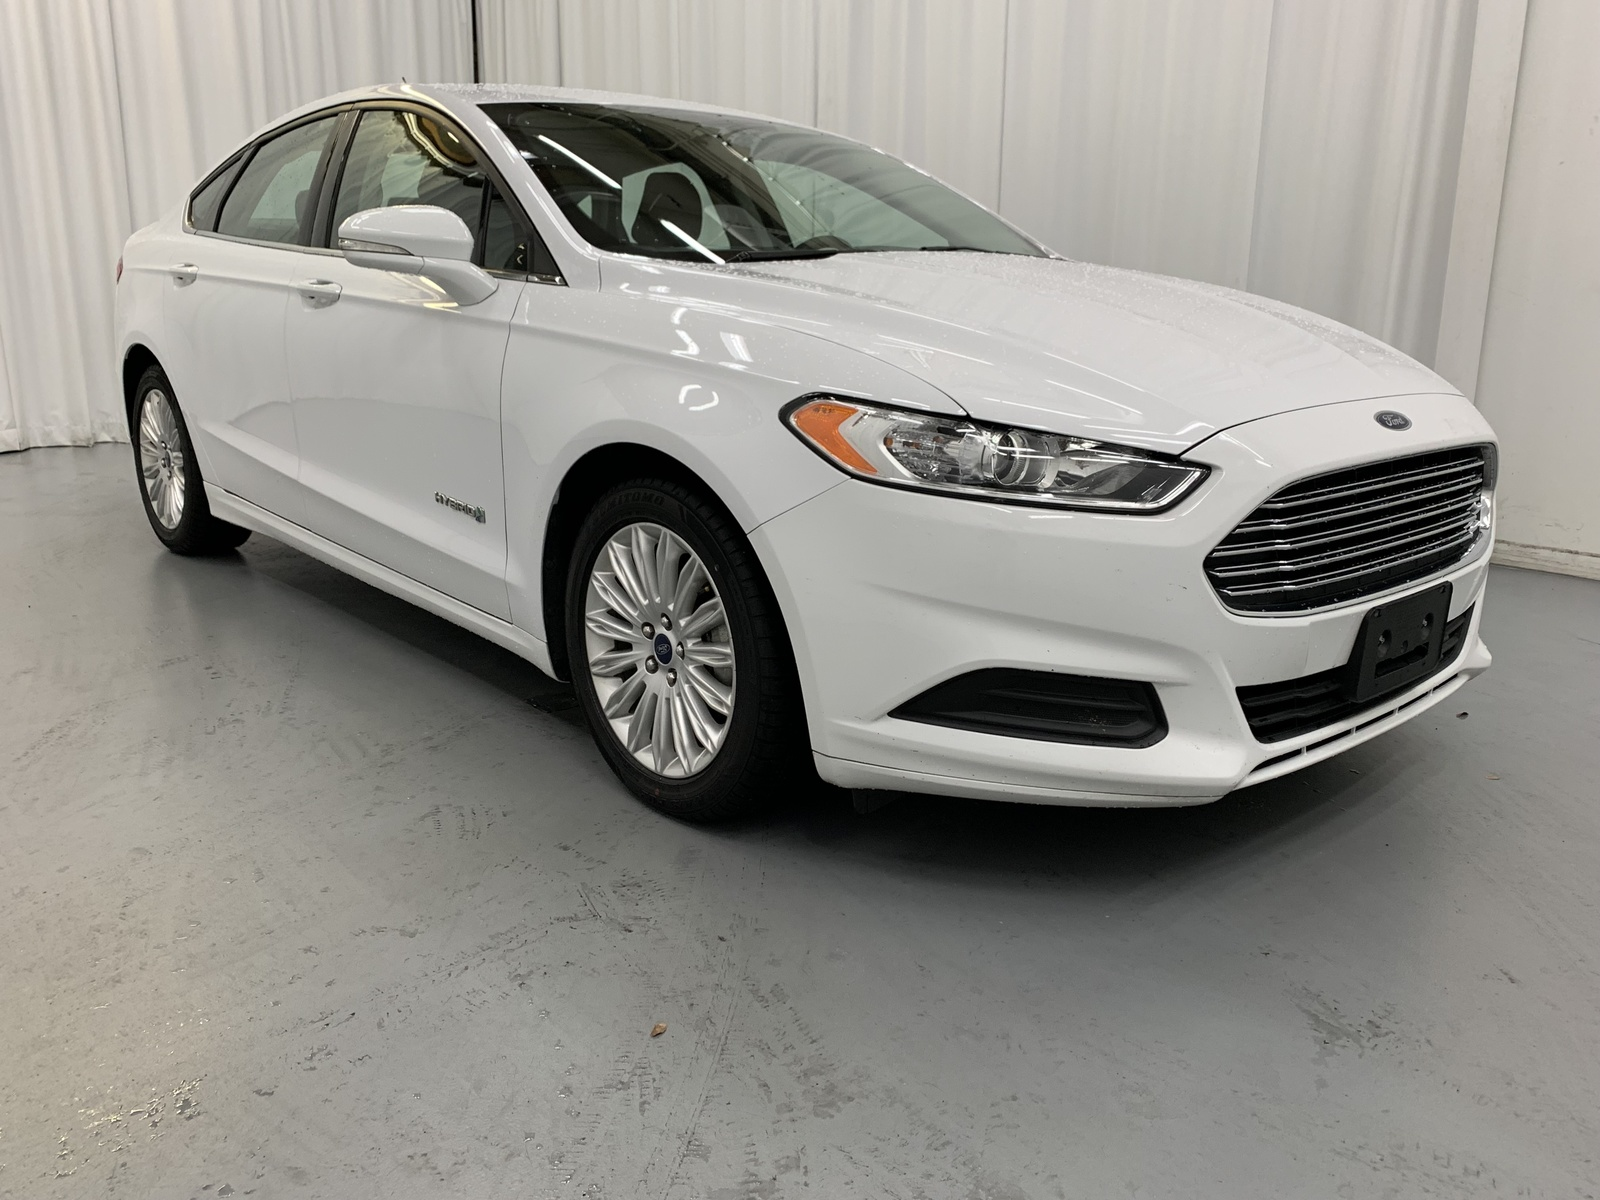 Pre-Owned 2016 Ford Fusion Hybrid SE Hybrid